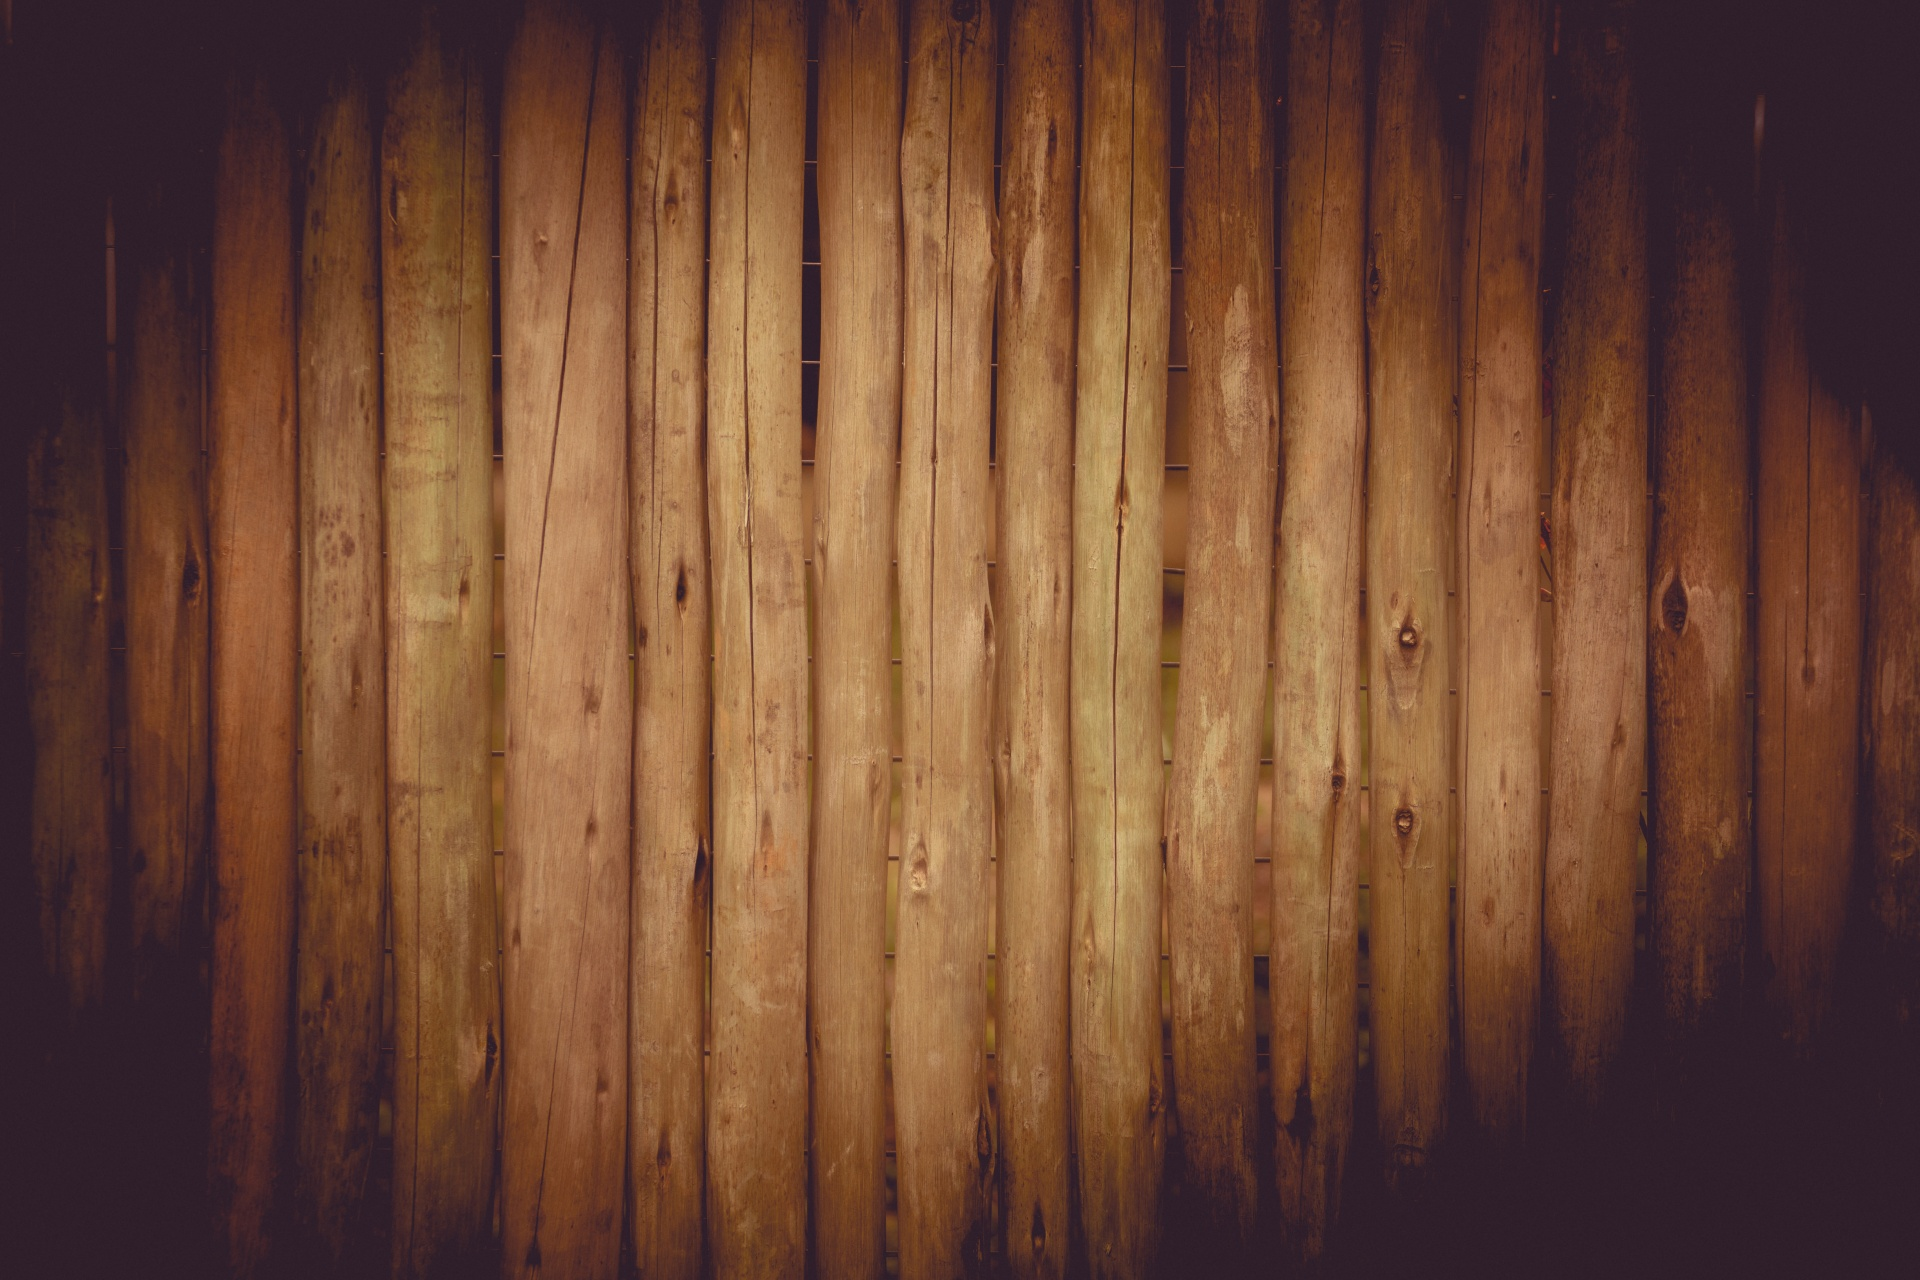 Wooden Sticks Background Free Stock Photo - Public Domain Pictures